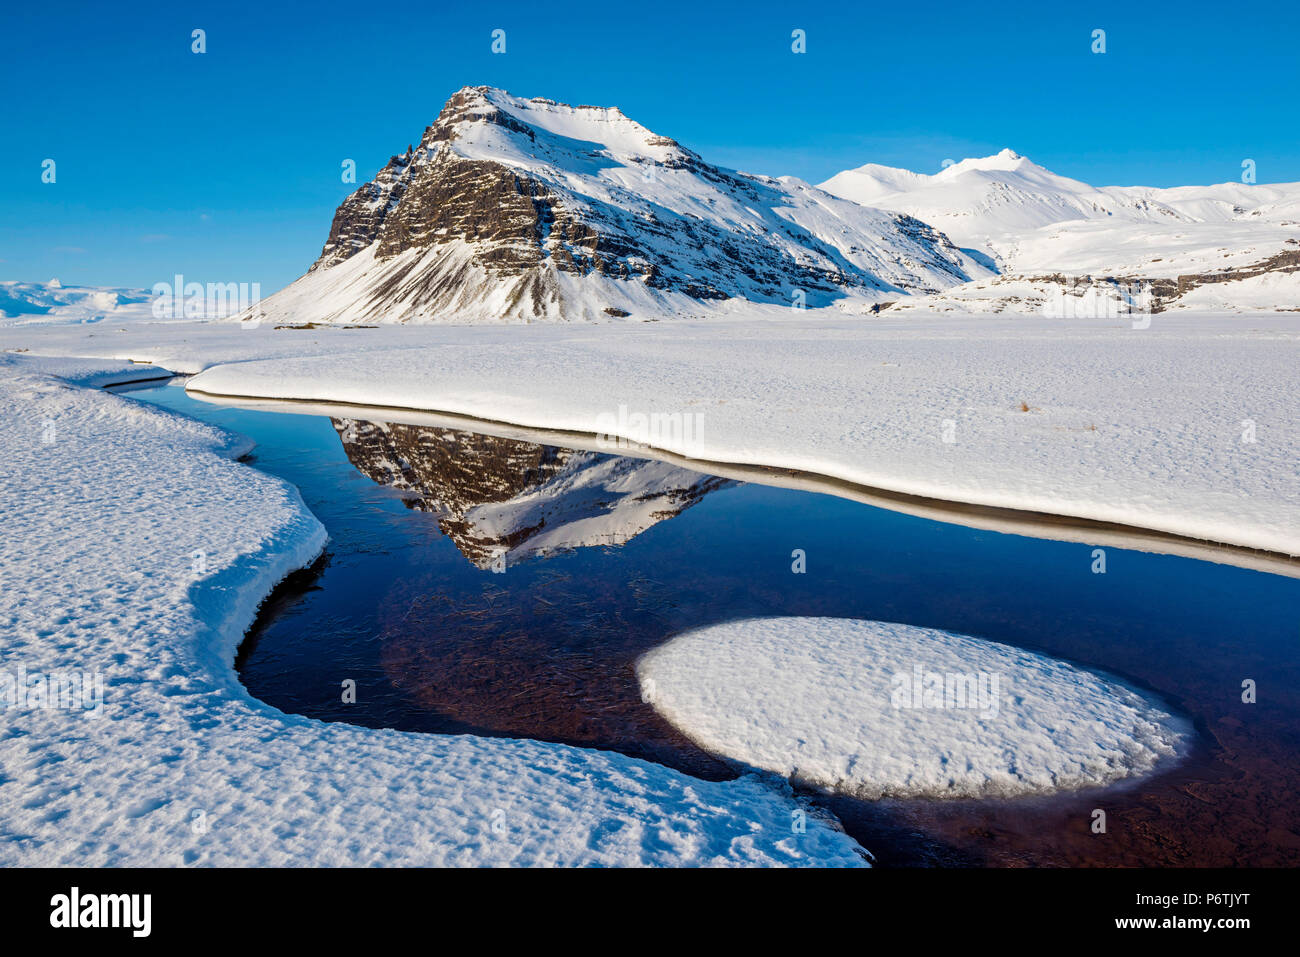 Iceland, Europe. Mountains mirroring in a crystal clear water surrounded by snow. - Stock Image